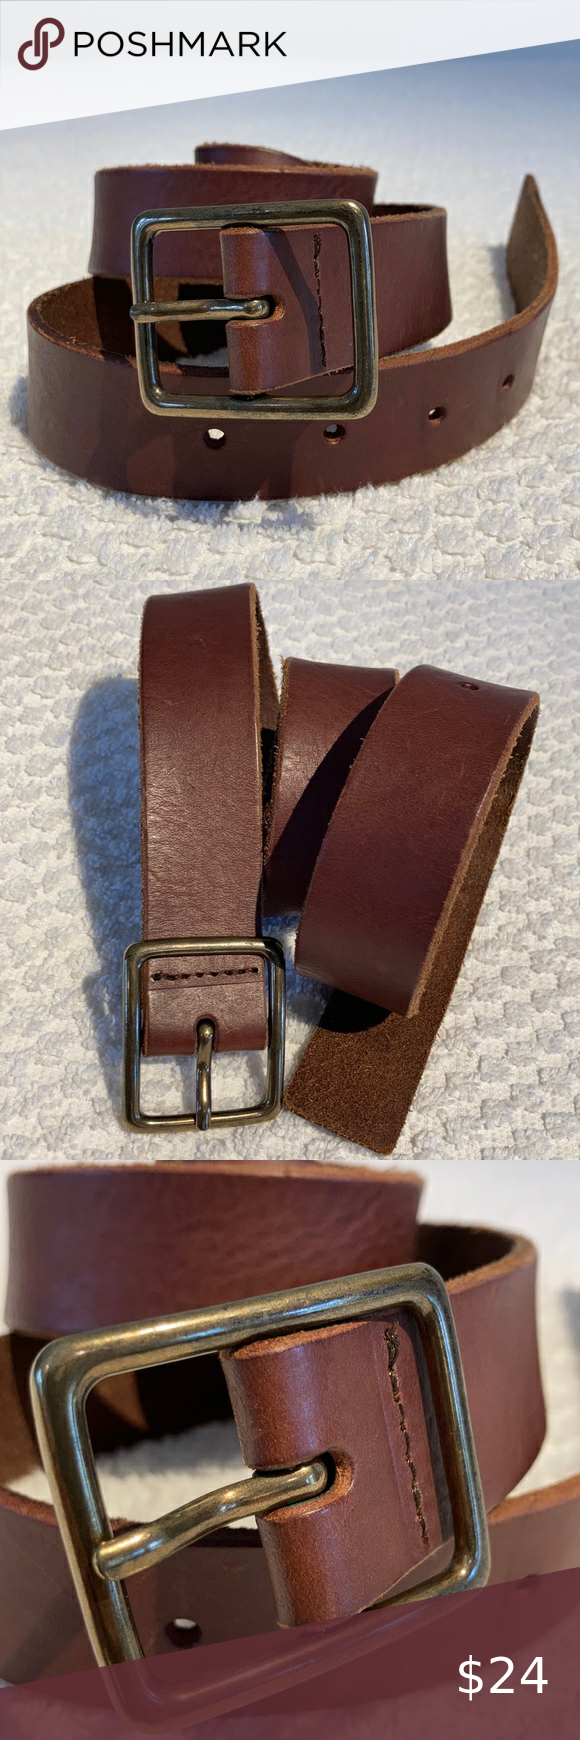 """Gap leather belt caramel brown size xs Supple leather belt Buckle color: antique brass Measurements as shown First hole is at 29,1/2"""" every inch up to 33,1/2"""" Fait rubbing on leather as shown This belt is in excellent preloved condition with very little wear Reasonable offer welcome GAP Accessories Belts"""